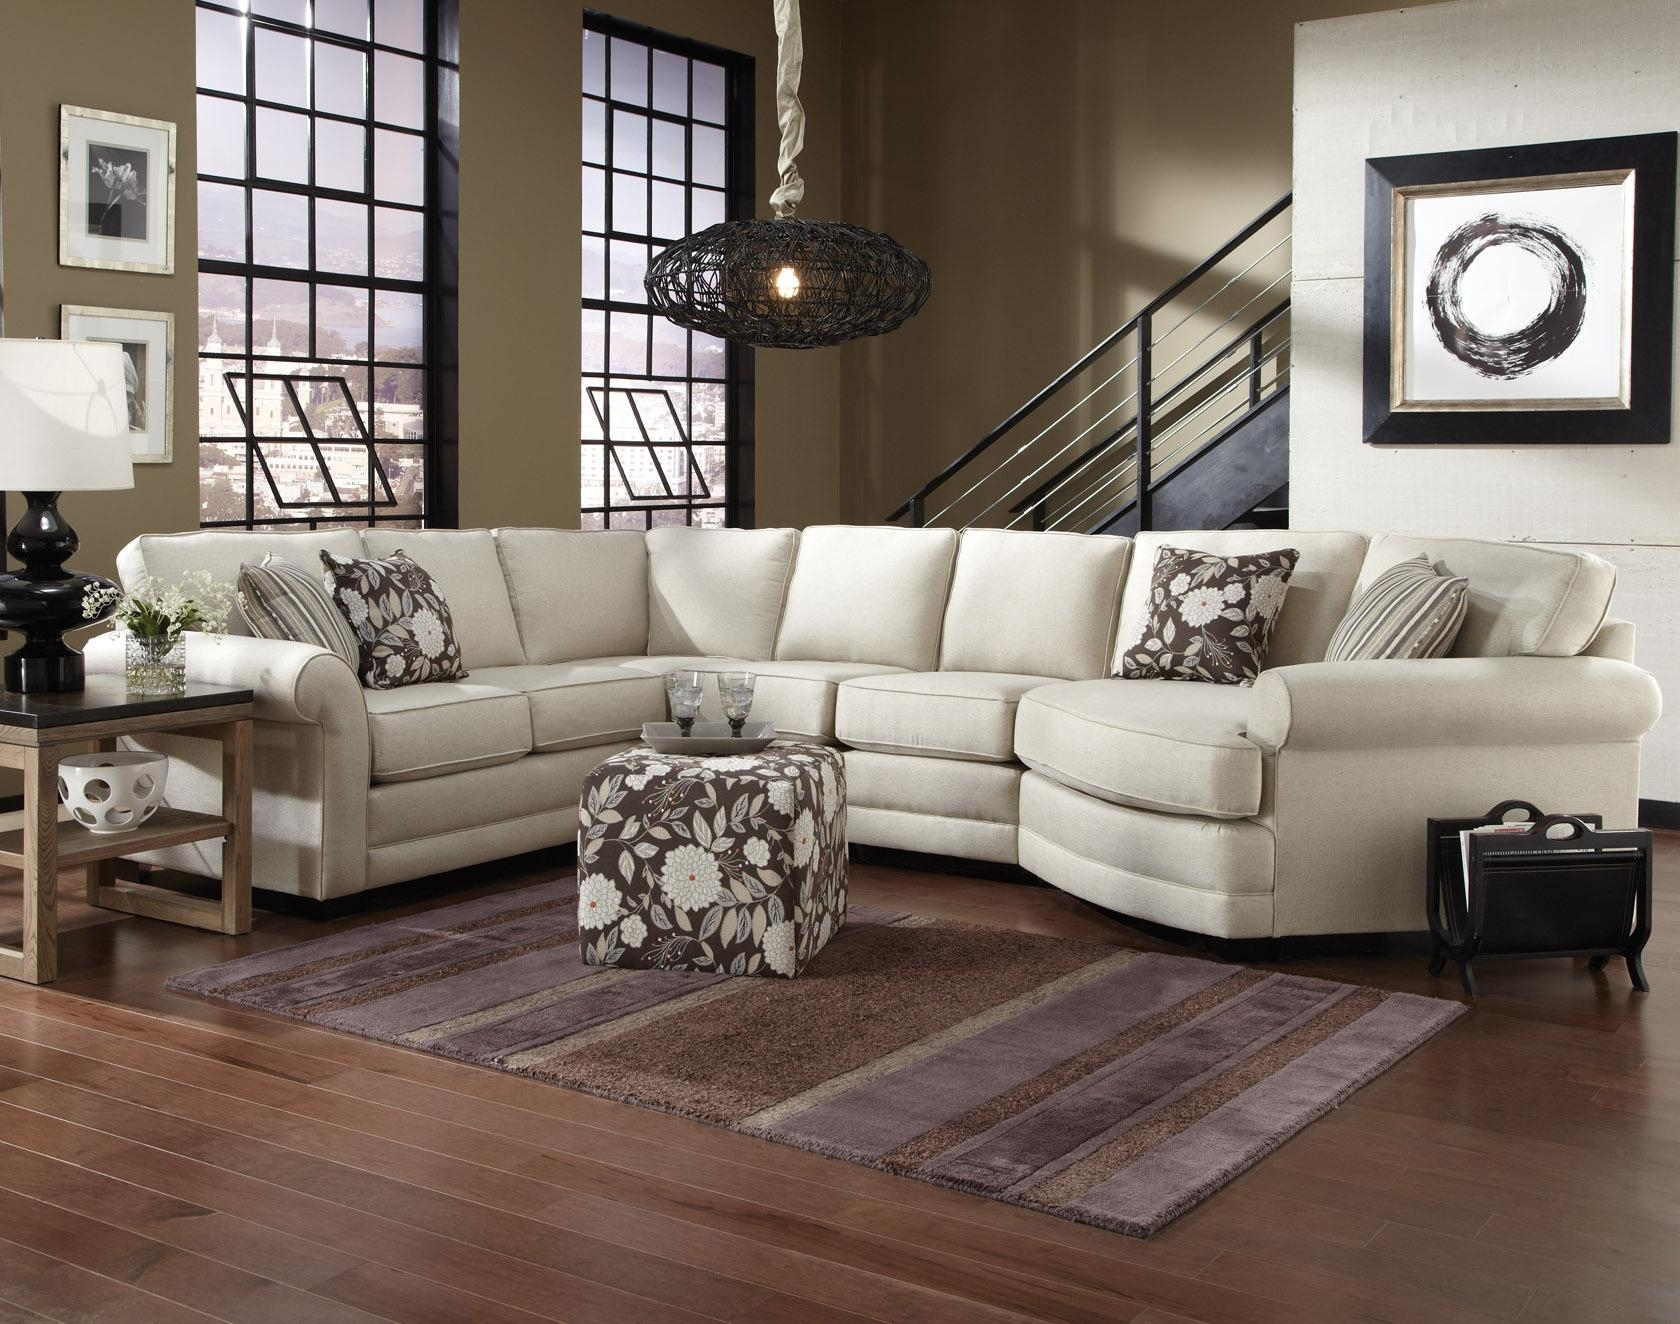 Rowe My Style I Ii Transitional Sectional Sofa With Turned Legs Throughout 7 Seat Sectional Sofa (Image 13 of 15)